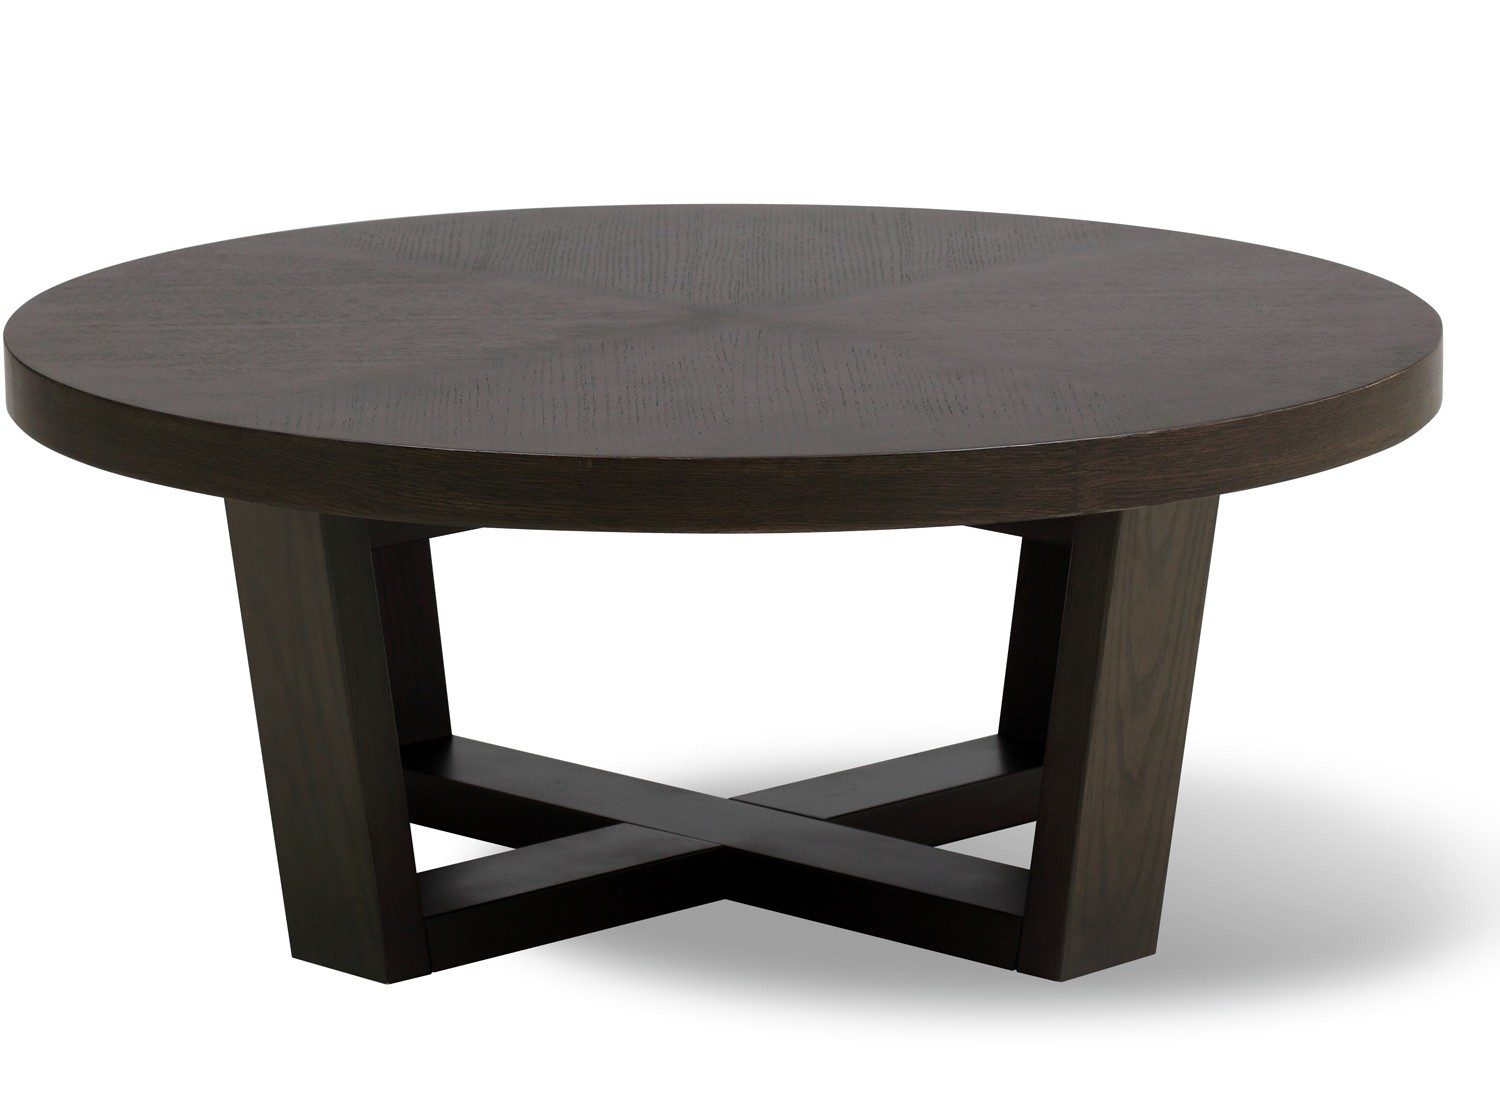 Tamma round coffee table 100 cm Espresso coffee table